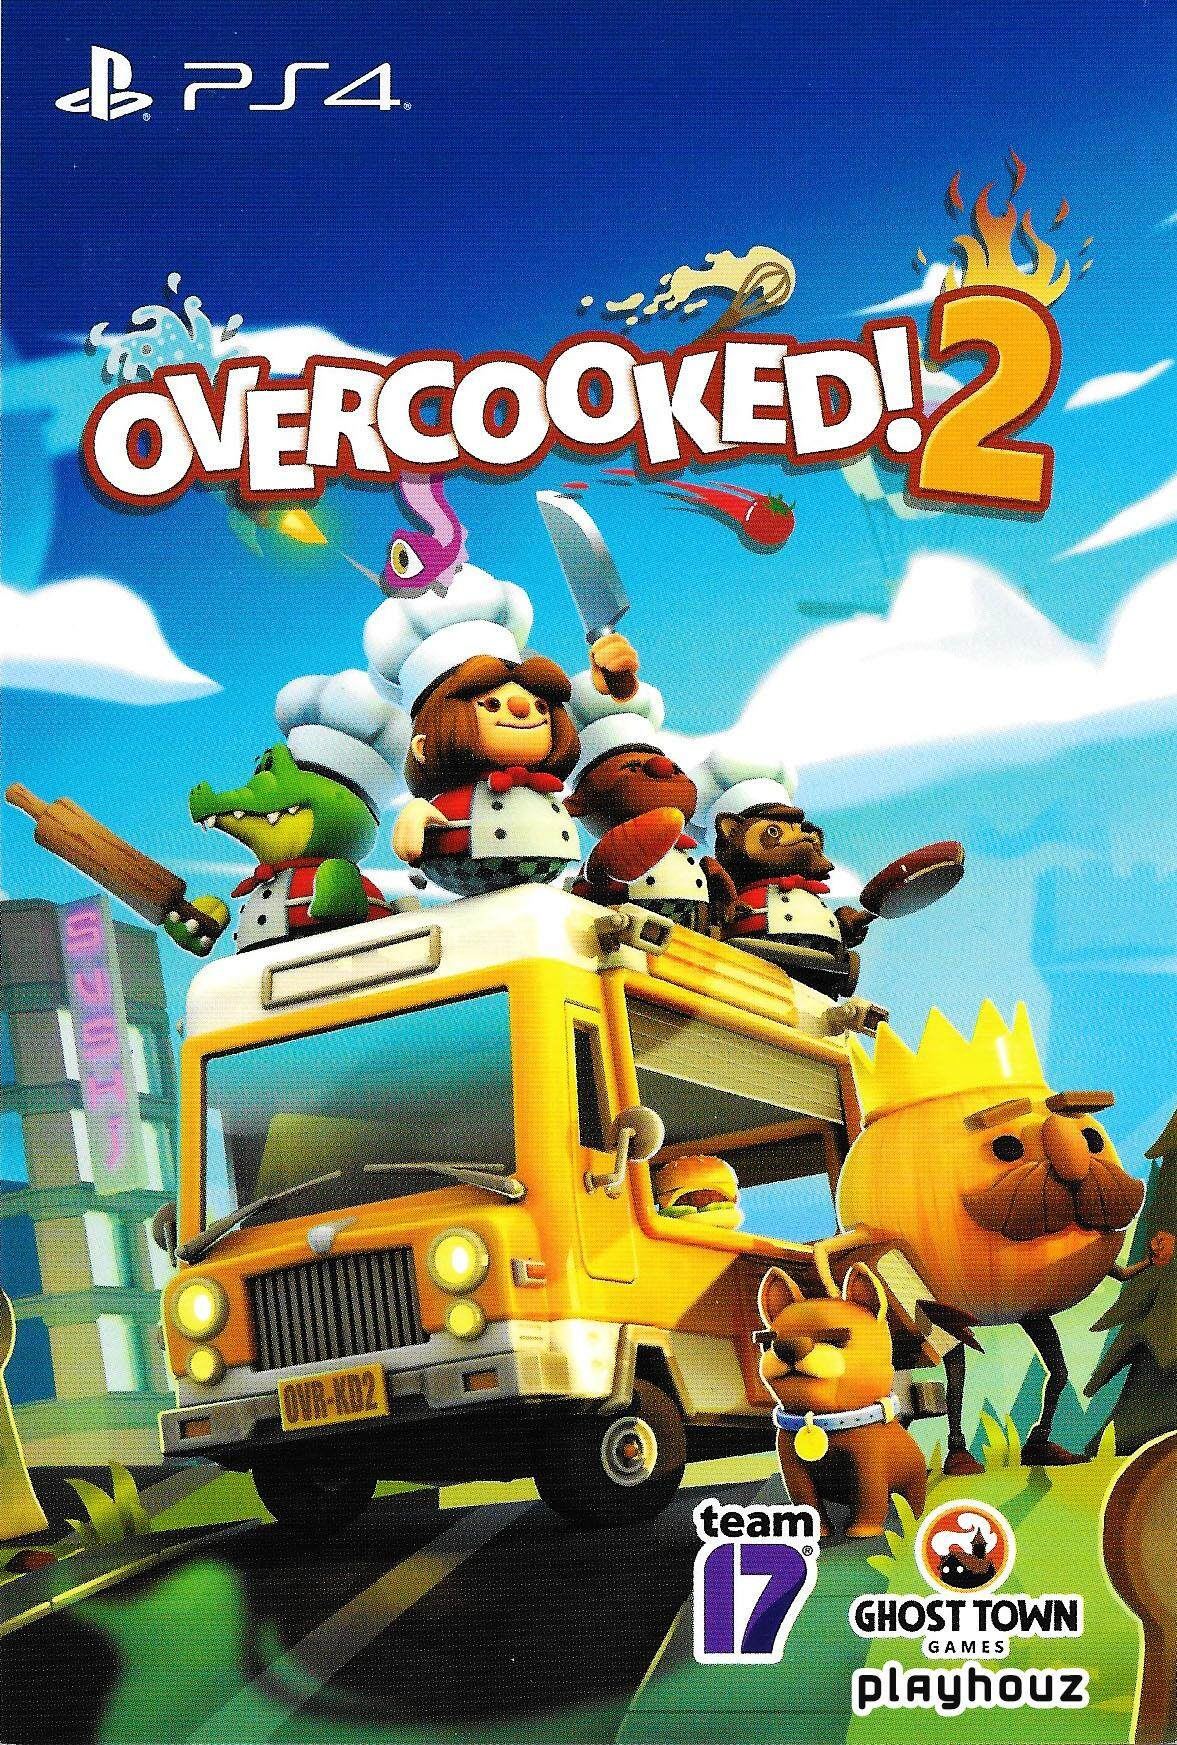 PS4 OVERCOOKED 2 [R3] Eng/Chi (Digital Code)